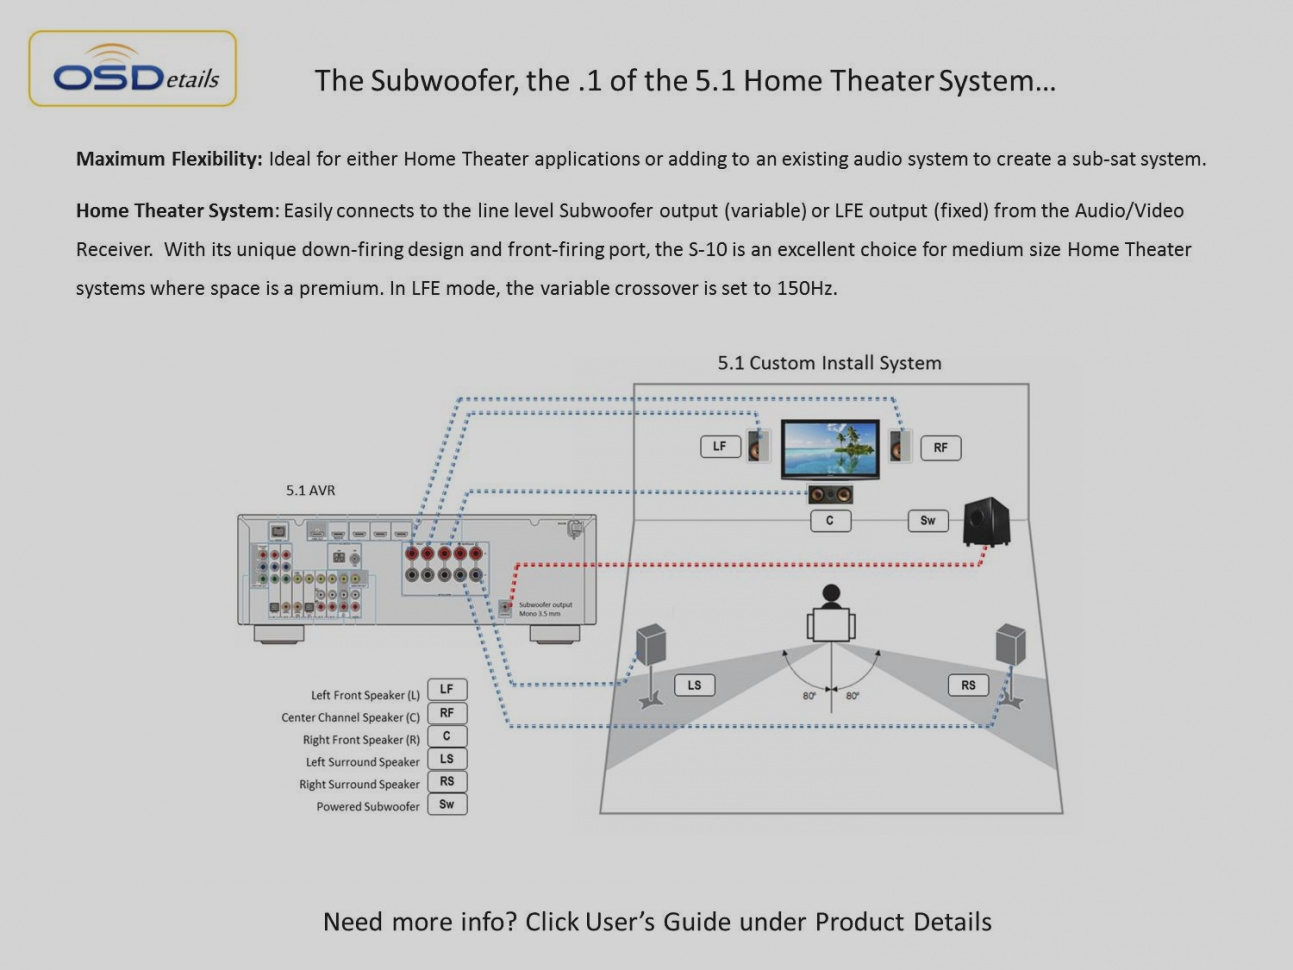 home theater systems wiring diagrams taotao 50 scooter diagram subwoofer free